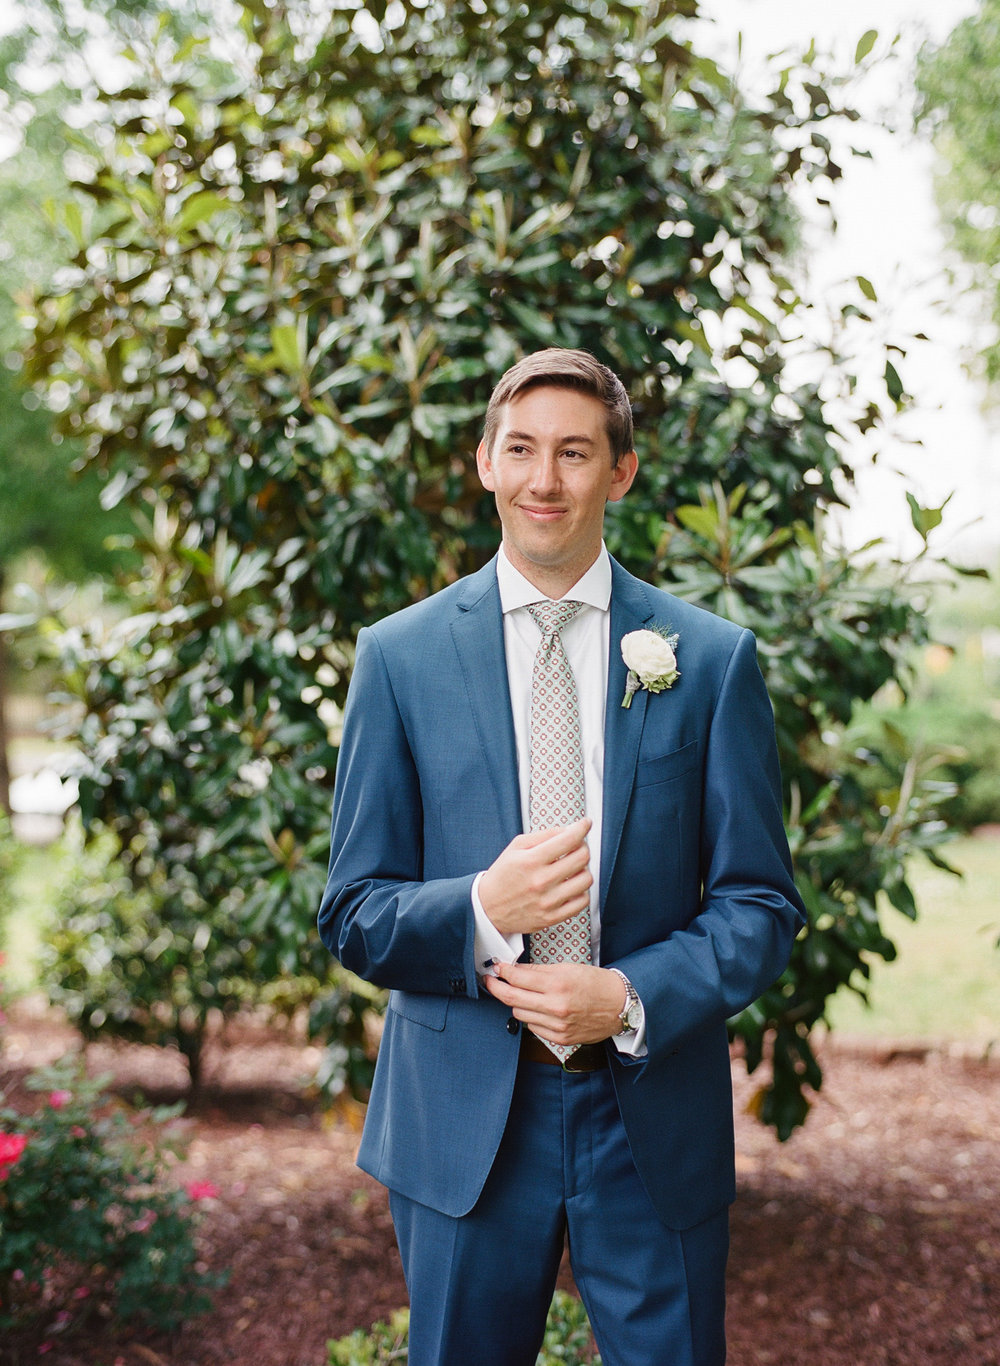 Raleigh Wedding Film Photographer 13.jpg